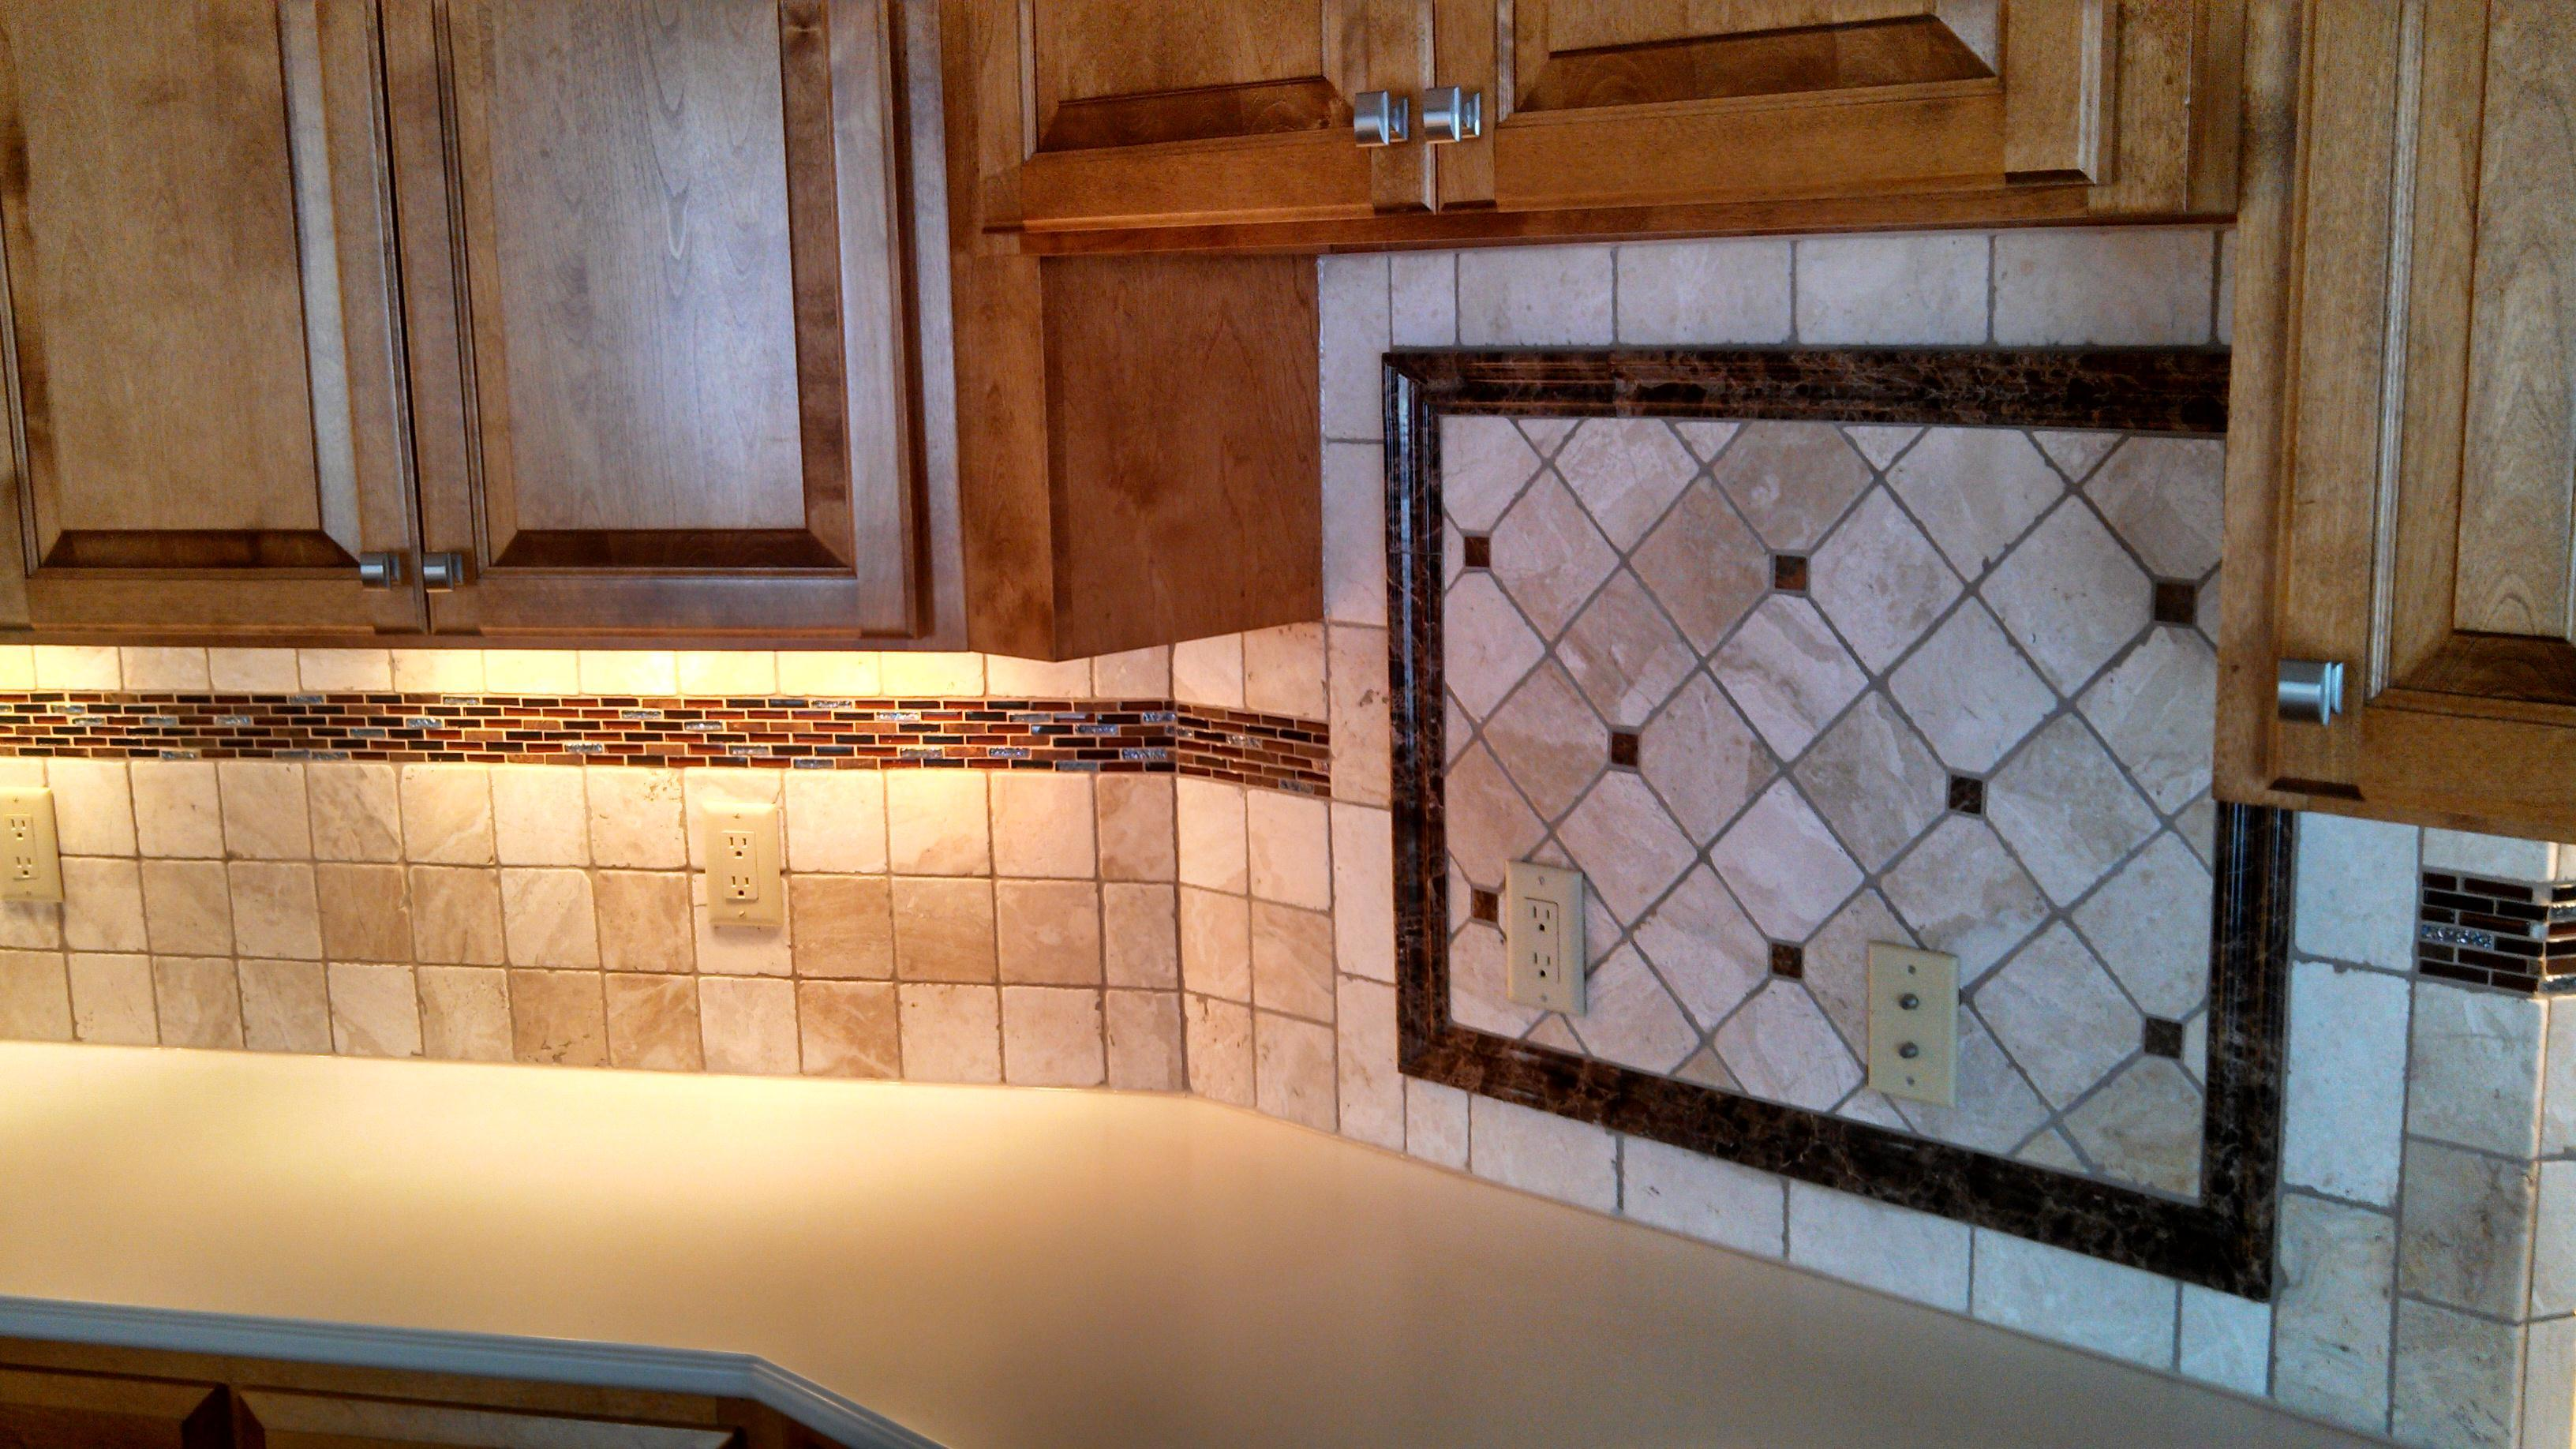 A unique design and installation to blend the backsplash pattern into a focal point over the desk area.